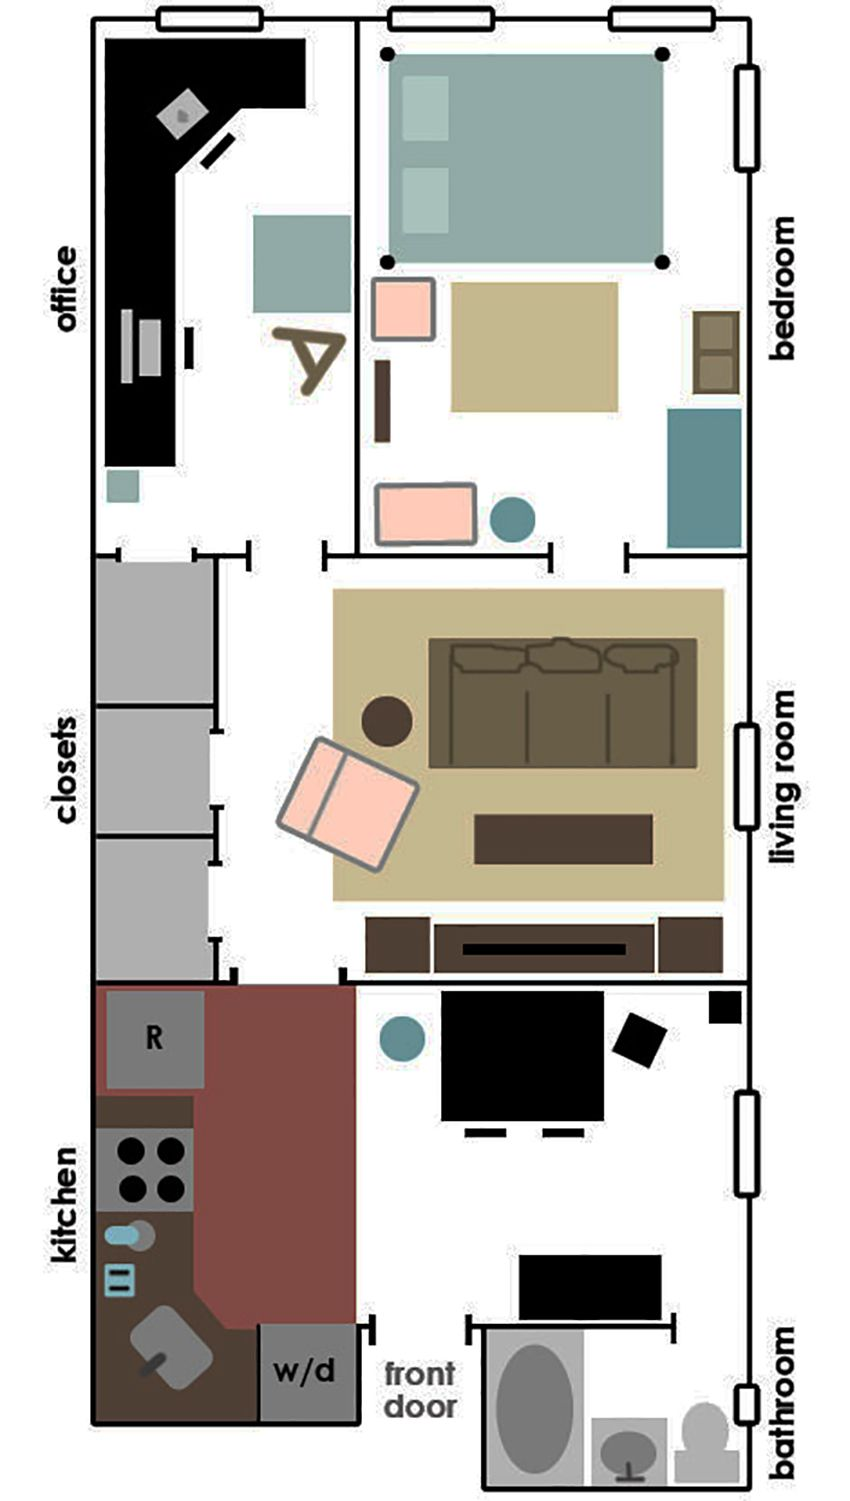 Apartment Furniture Layout Planner Home Design And Decor Living Room Worksheet